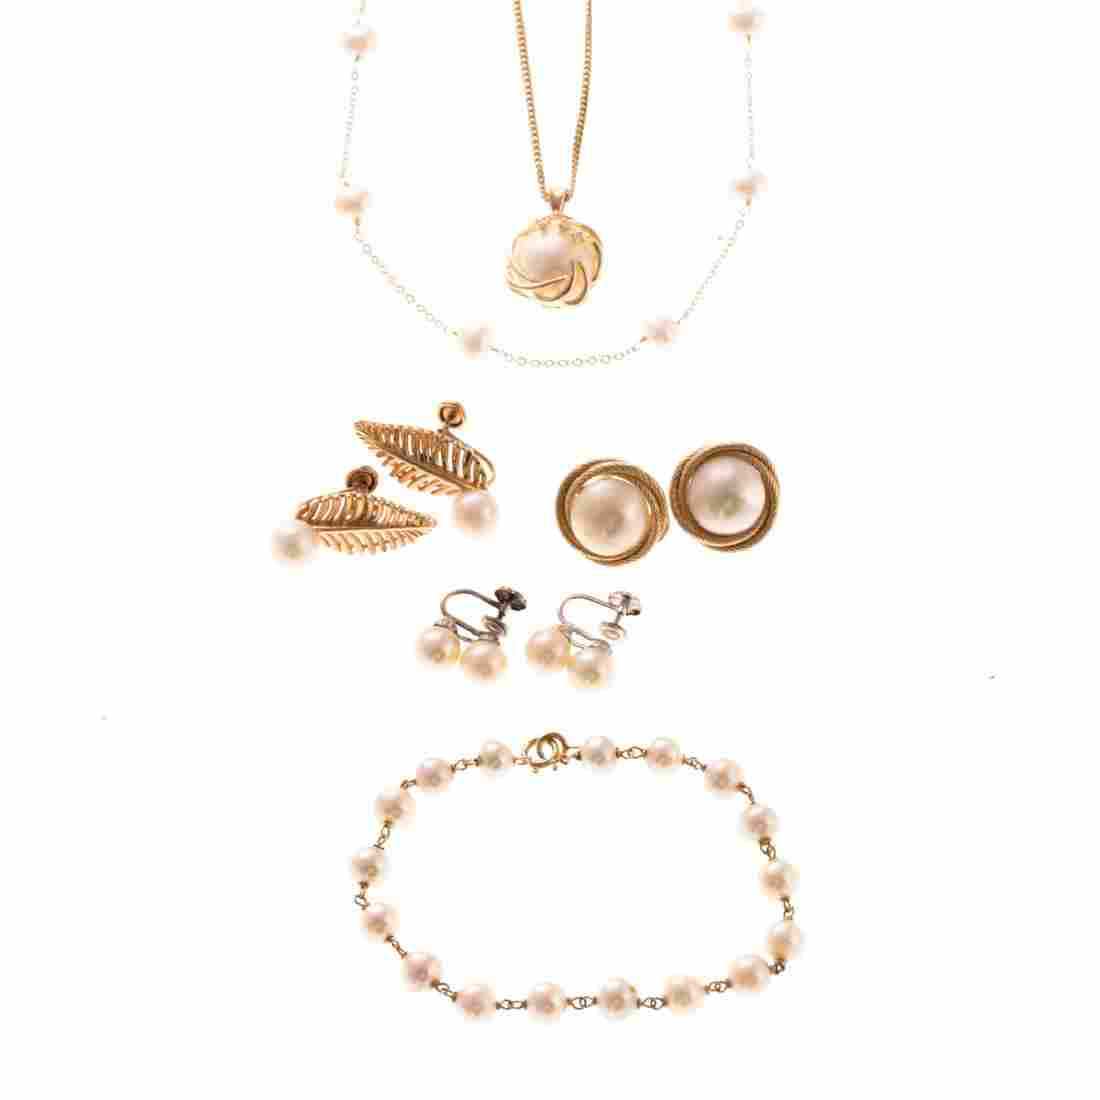 A Collection of Lady's Pearl and Gold Jewelry